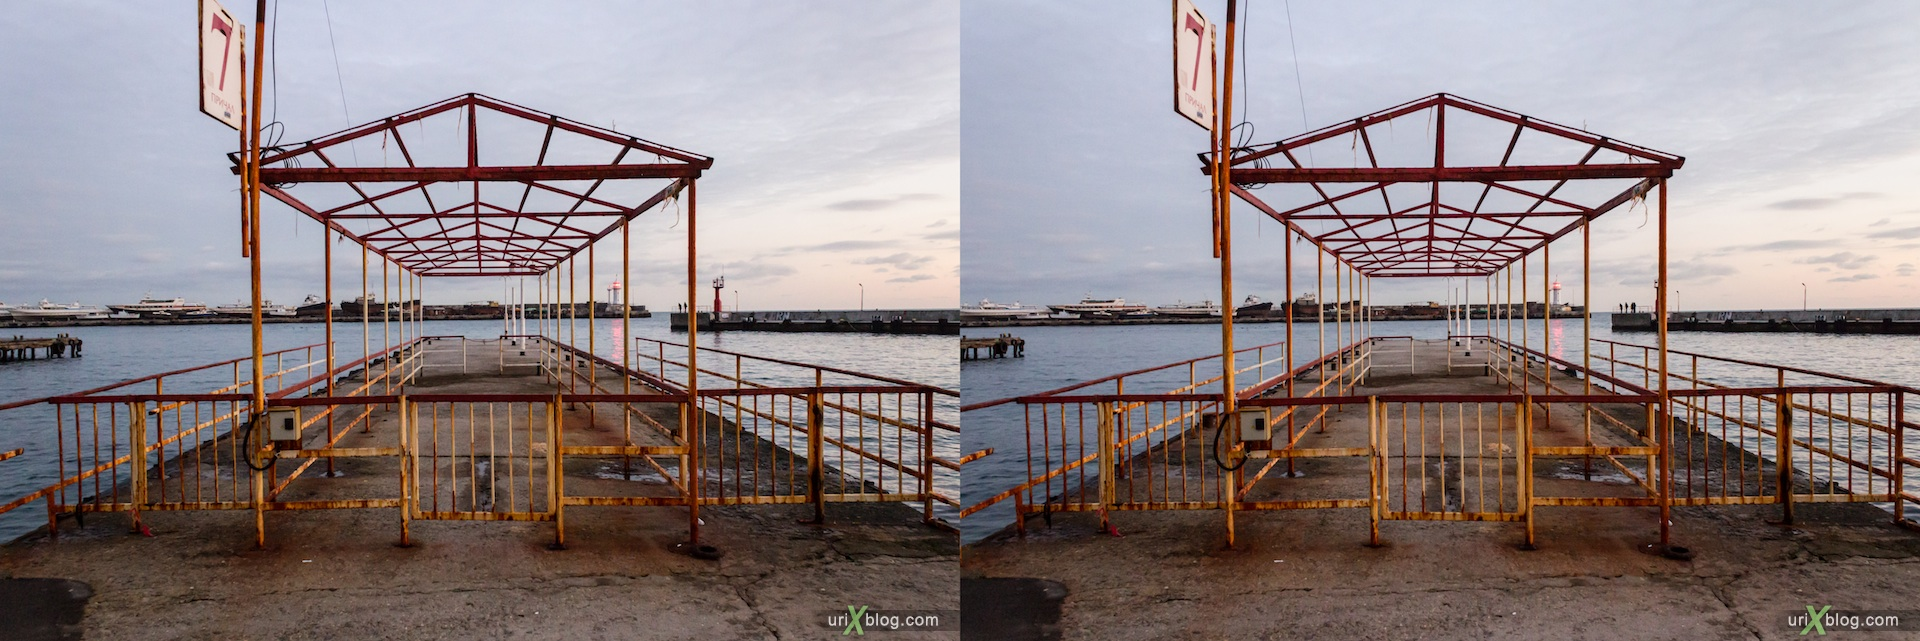 2012, Imeni Lenina embankment, groyne, dock, berth, wharf, Yalta, sea, evening, coast city, Crimea, Ukraine, 3D, stereo pair, cross-eyed, crossview, cross view stereo pair, stereoscopic